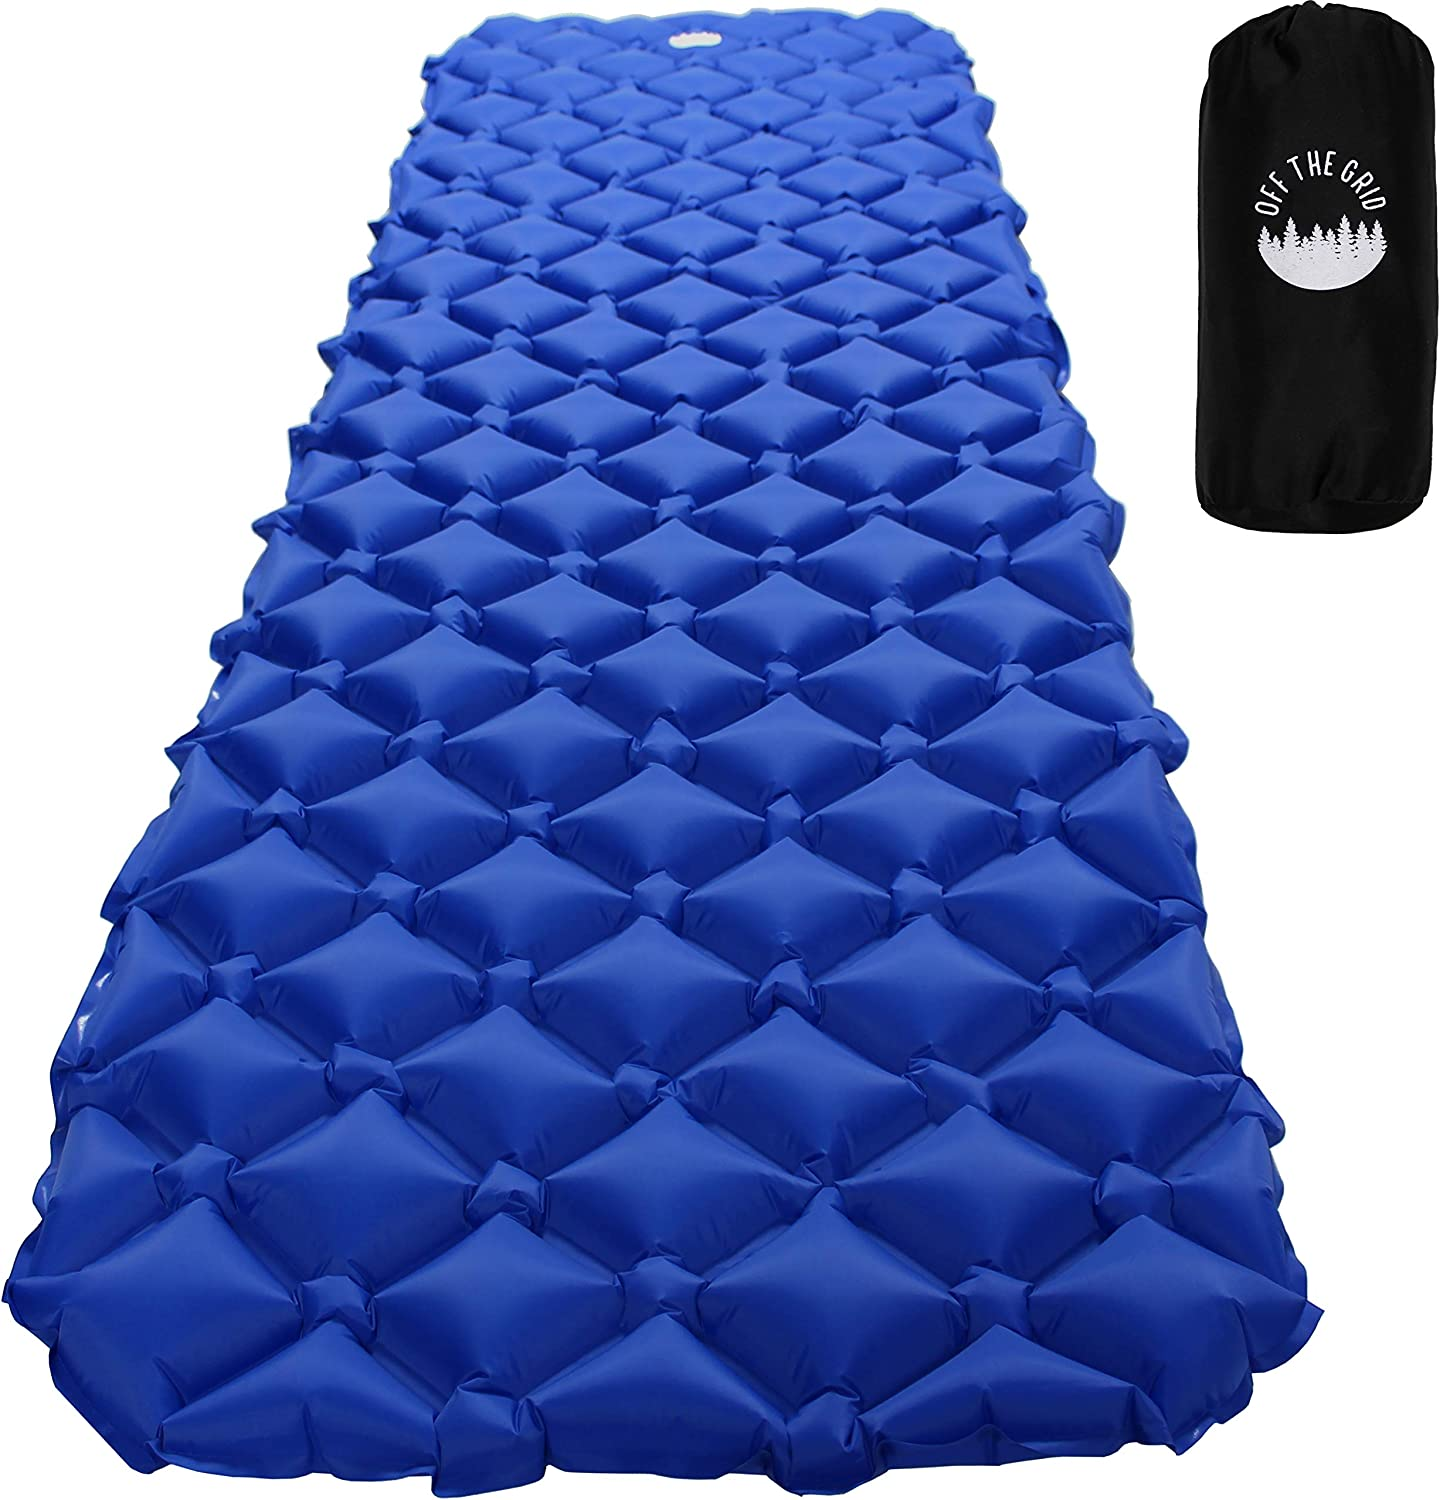 Relefree Camping Mat Sleeping Mat with Pillow Ultralight Folding Camping Air Mattress For Outdoor Tent Sleeping Bag and Backpacking Hiking Camping Sleeping